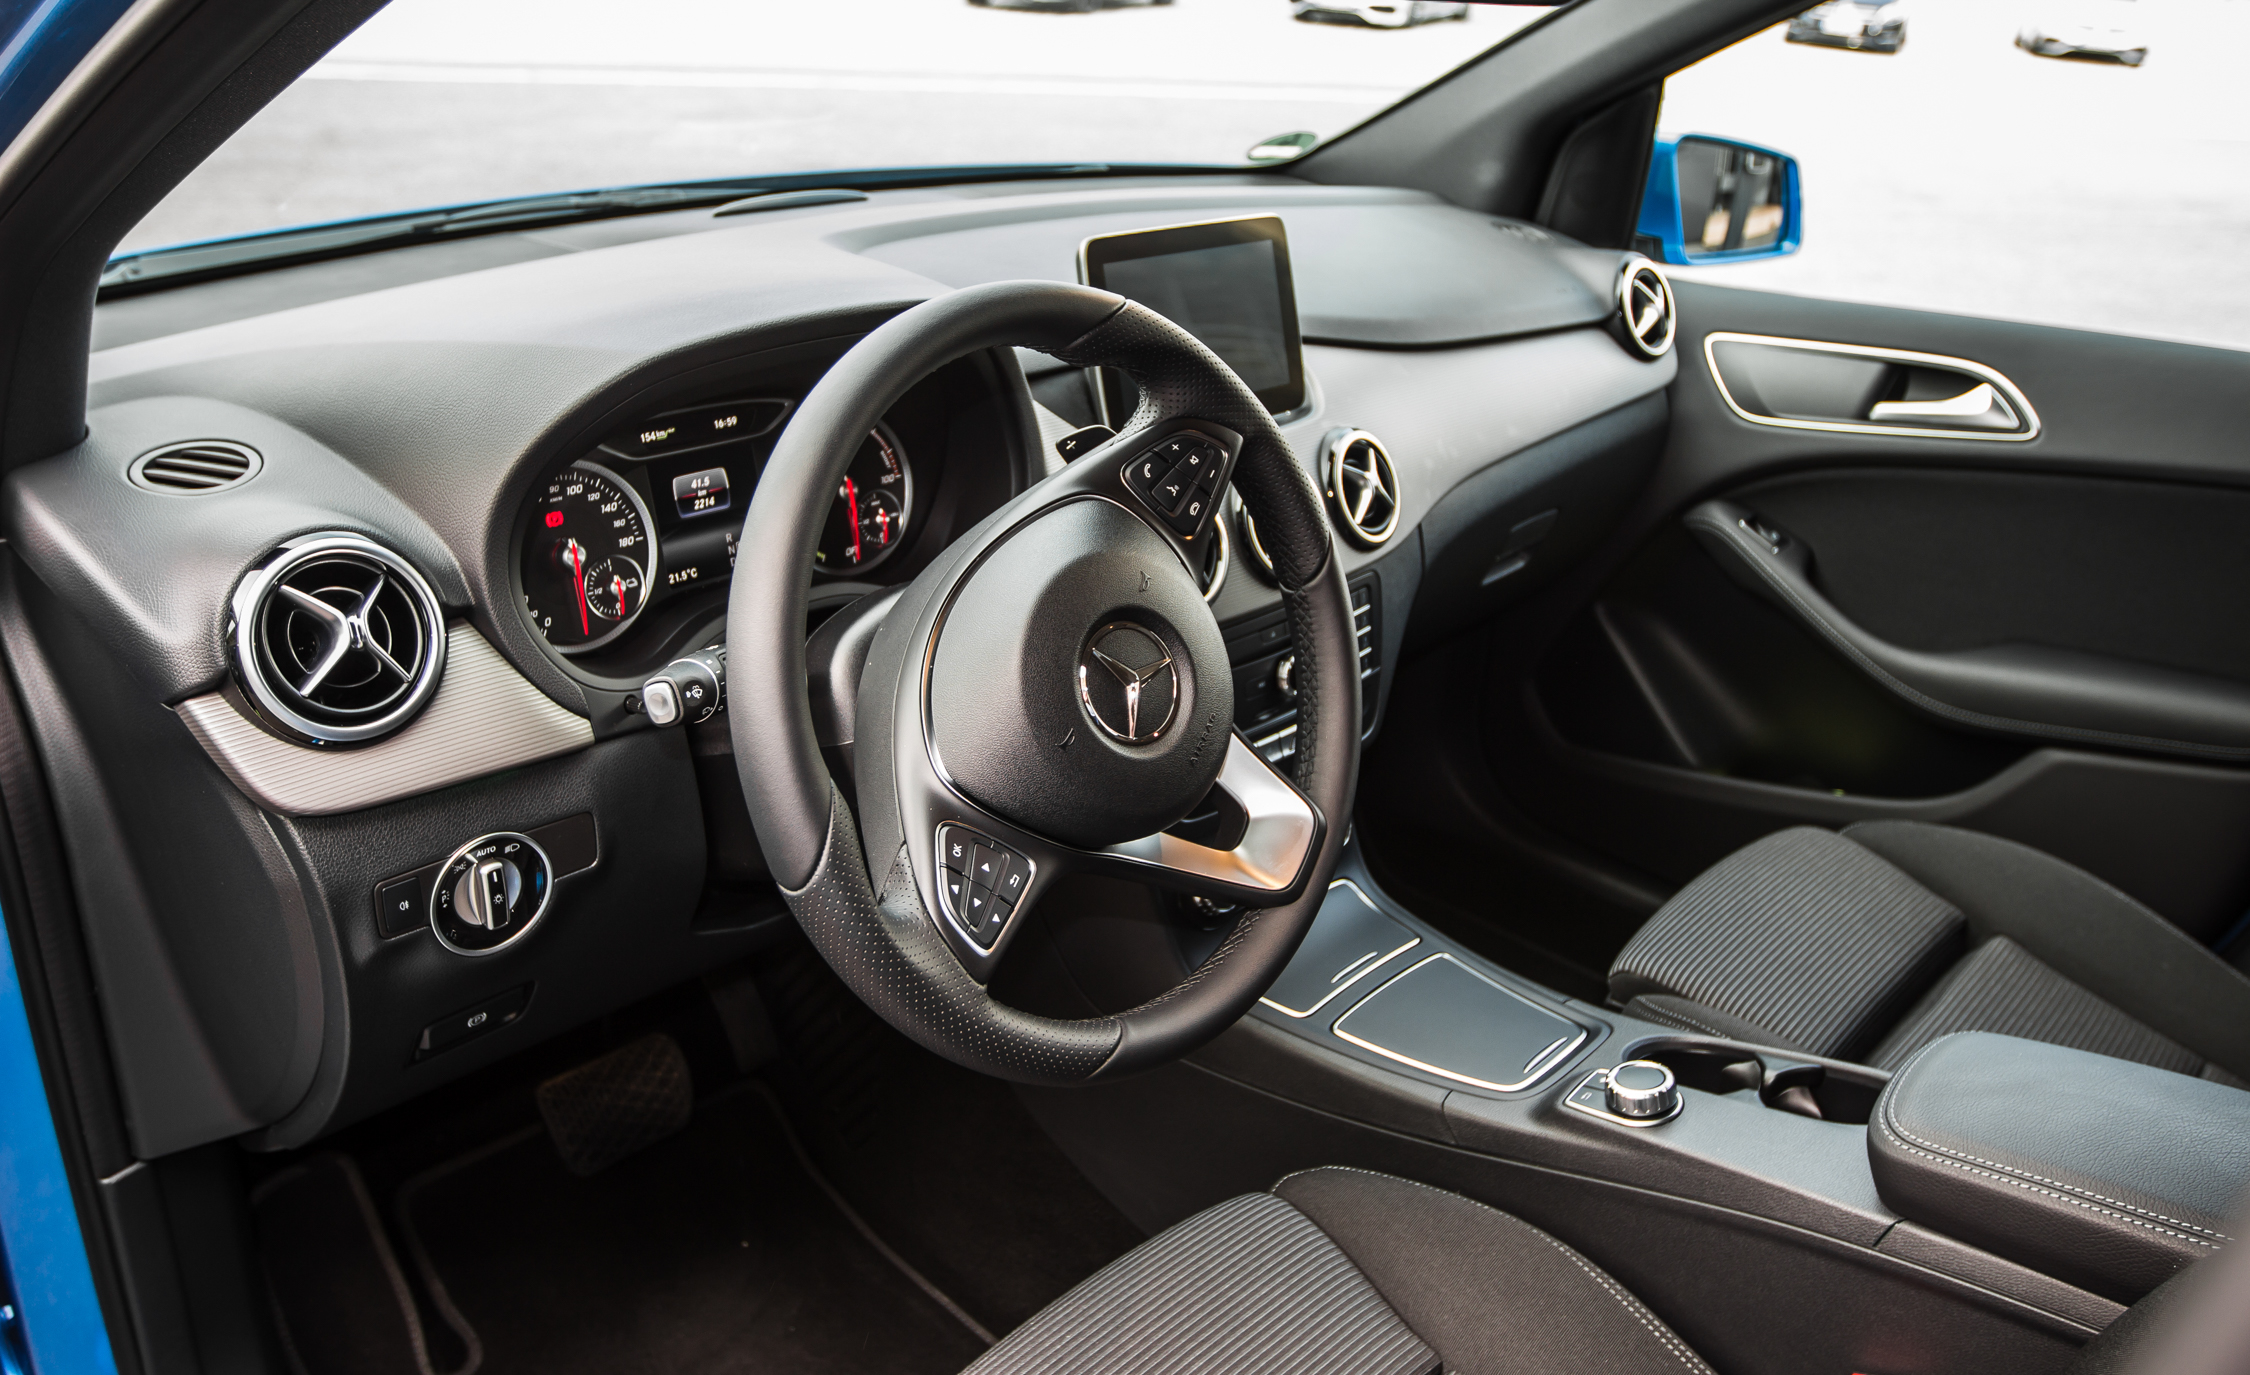 2017 Mercedes Benz B250e Interior Driver Cockpit (Photo 18 of 24)